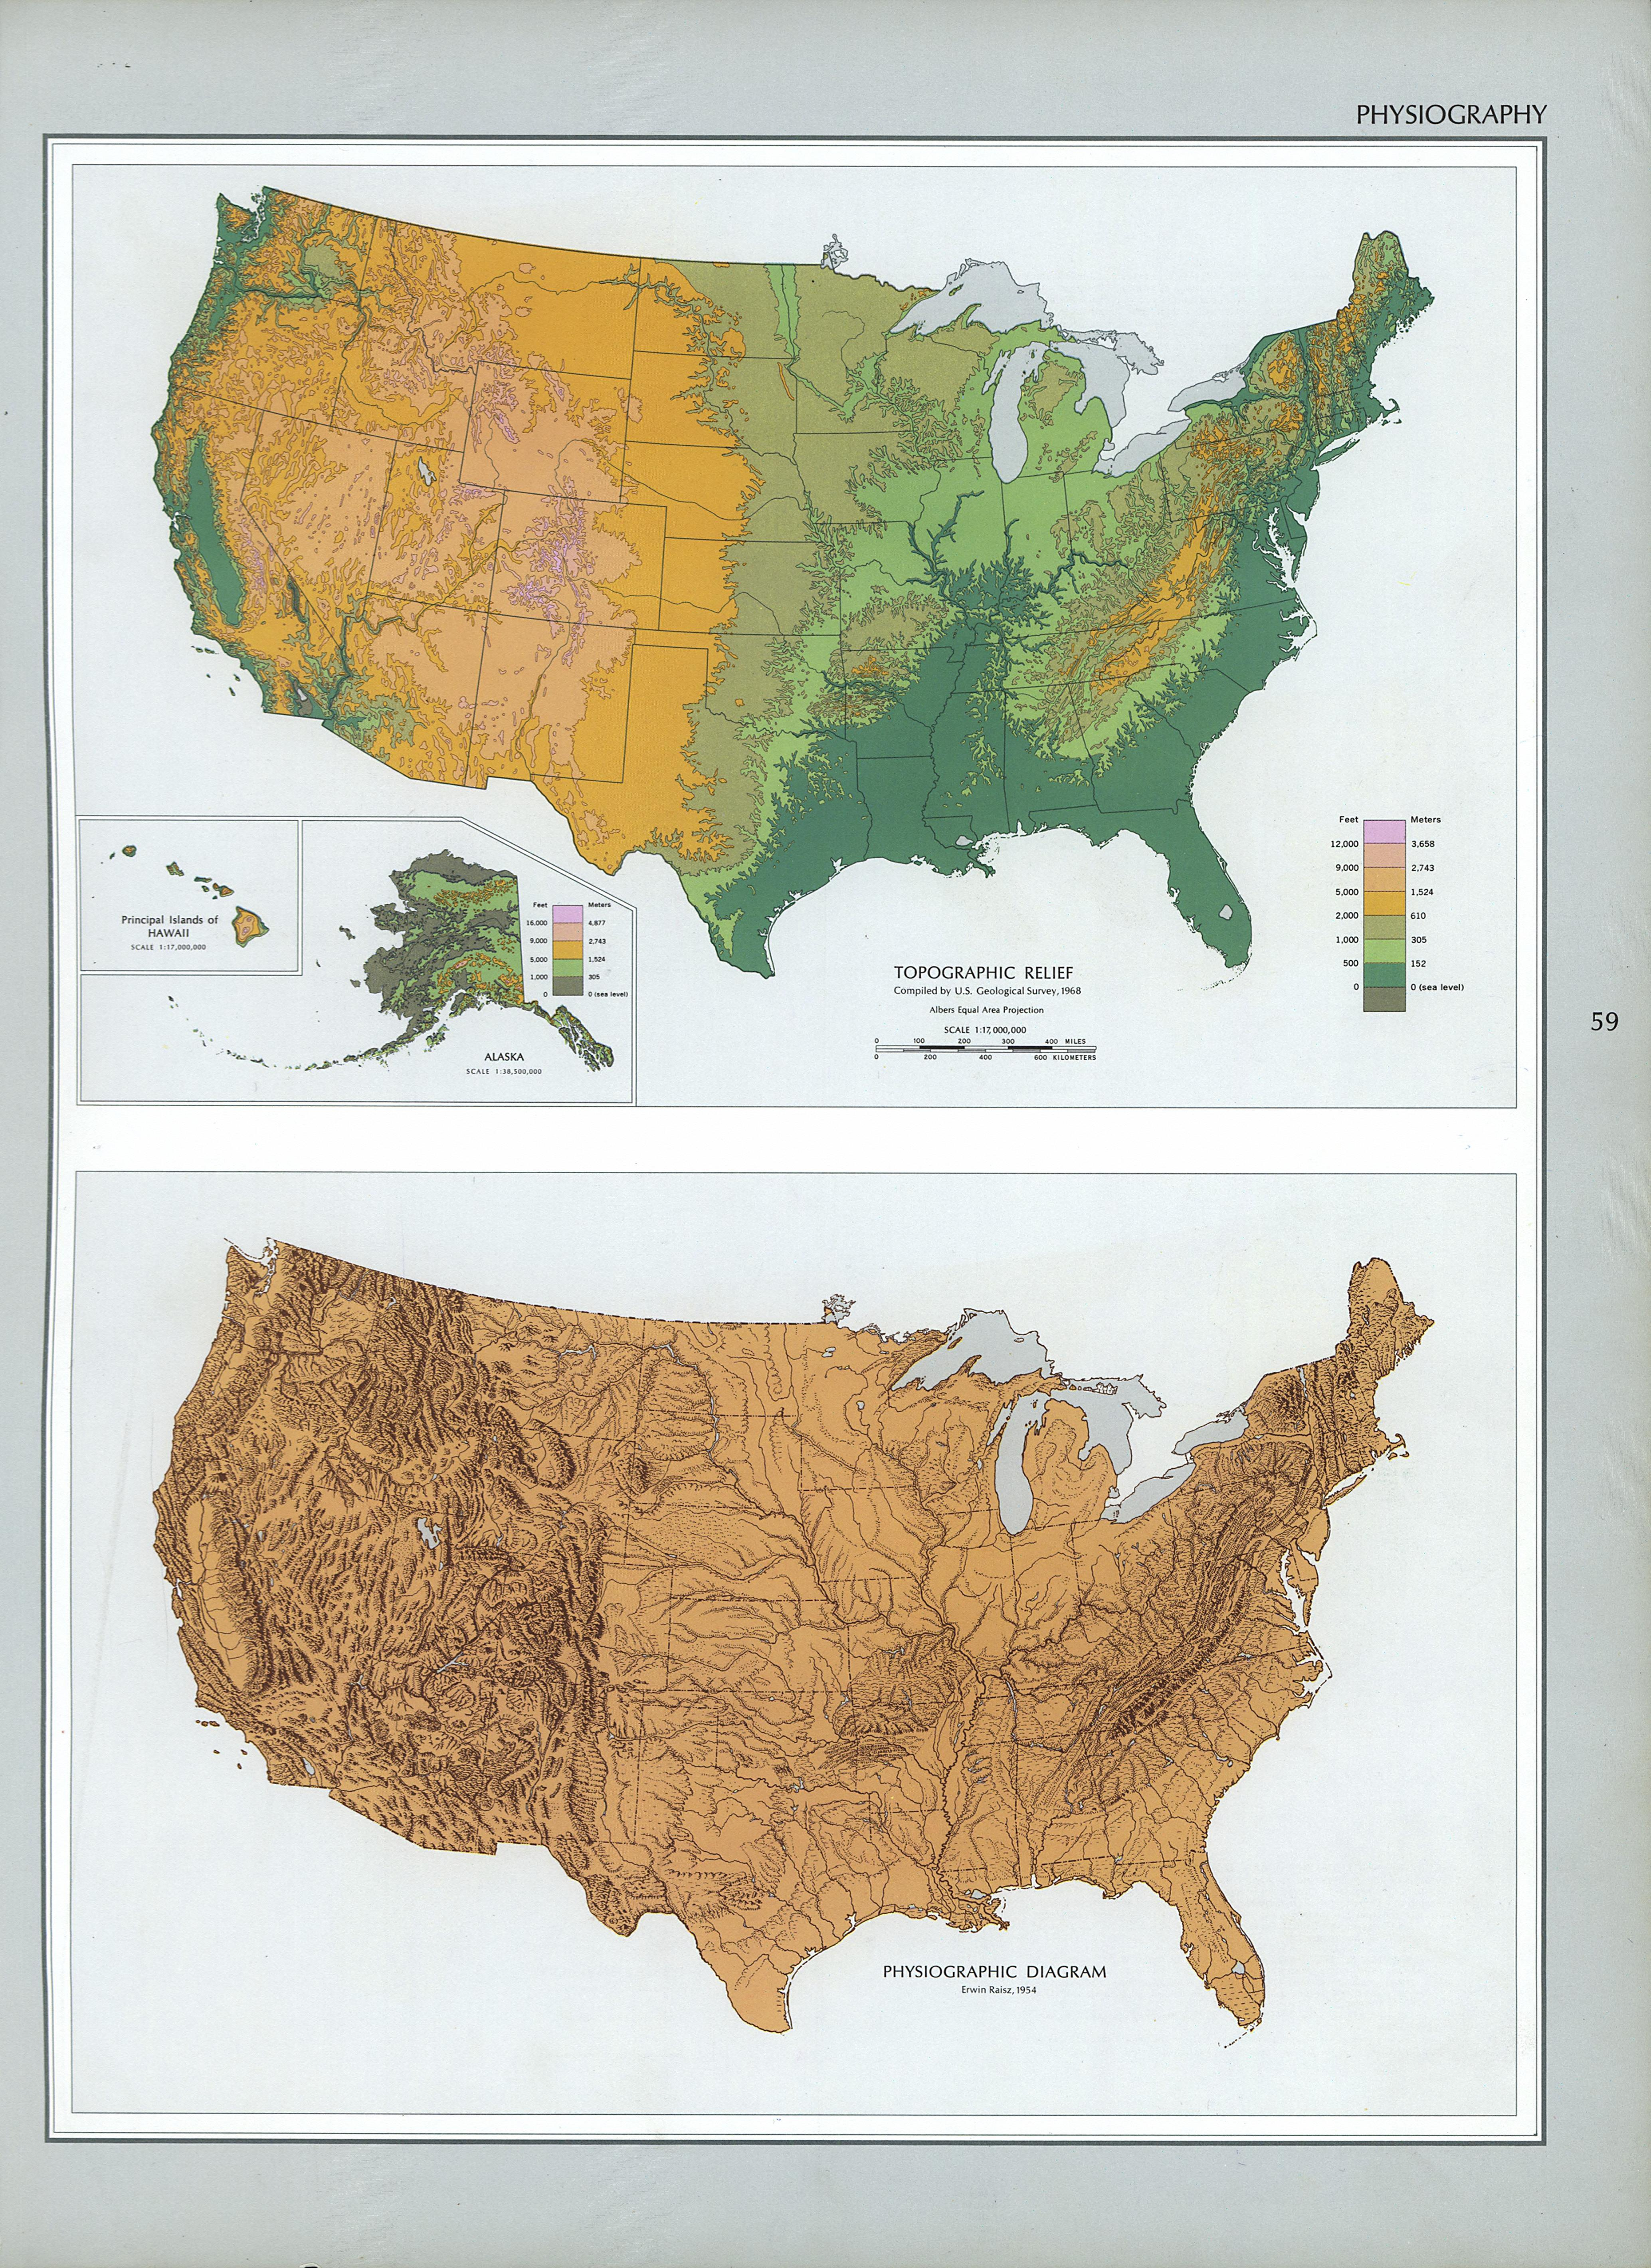 United States Physiography Map 1970